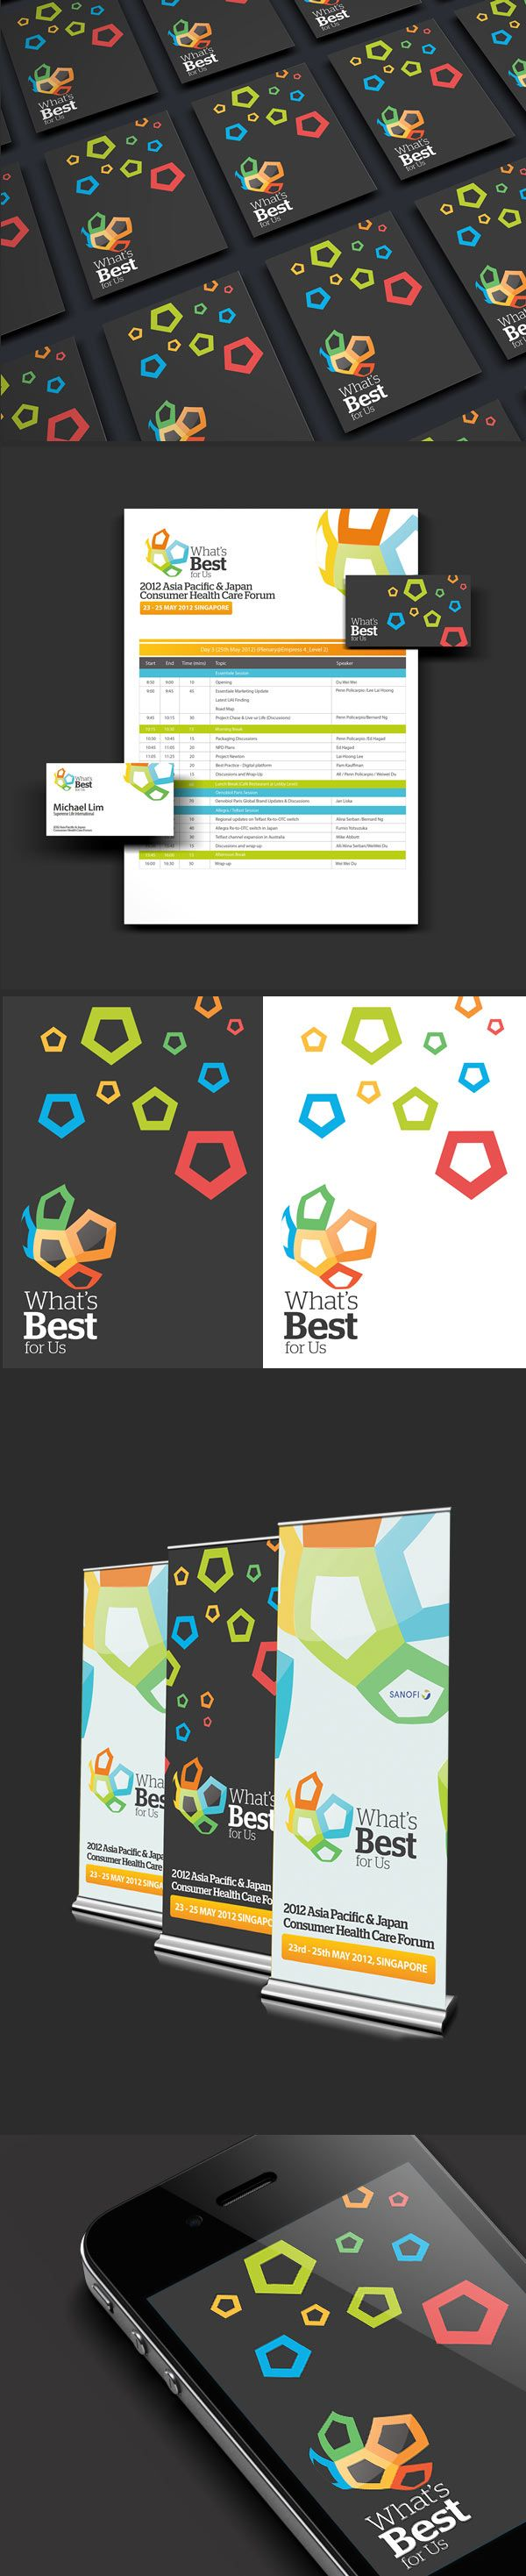 What's Best For Us - Brand Identity by Lemongraphic